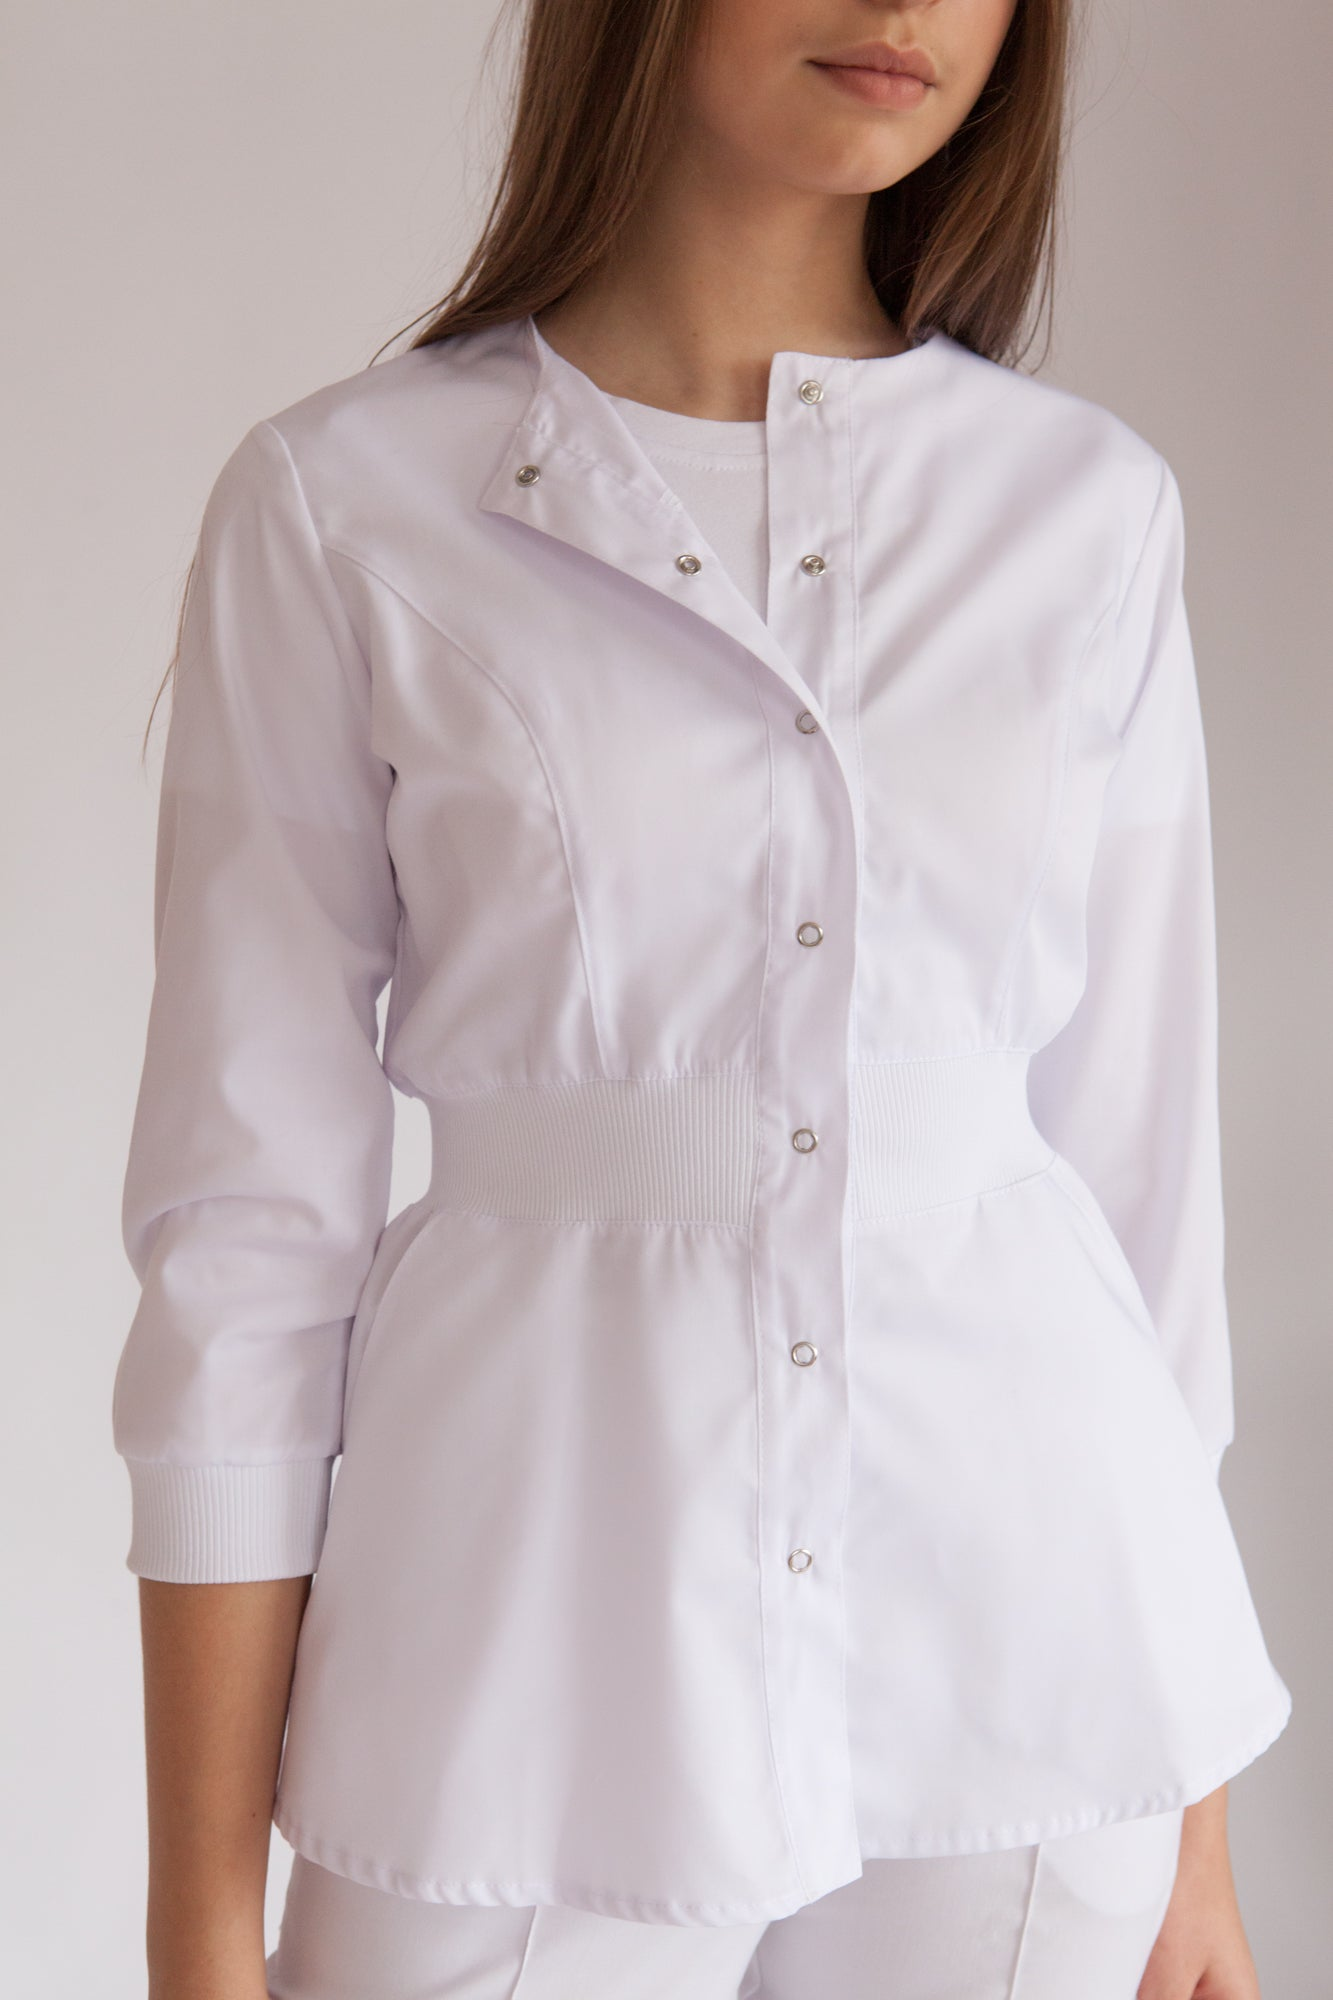 <transcy>Medical Jacket with buttons &quot;Comfort&quot;</transcy>